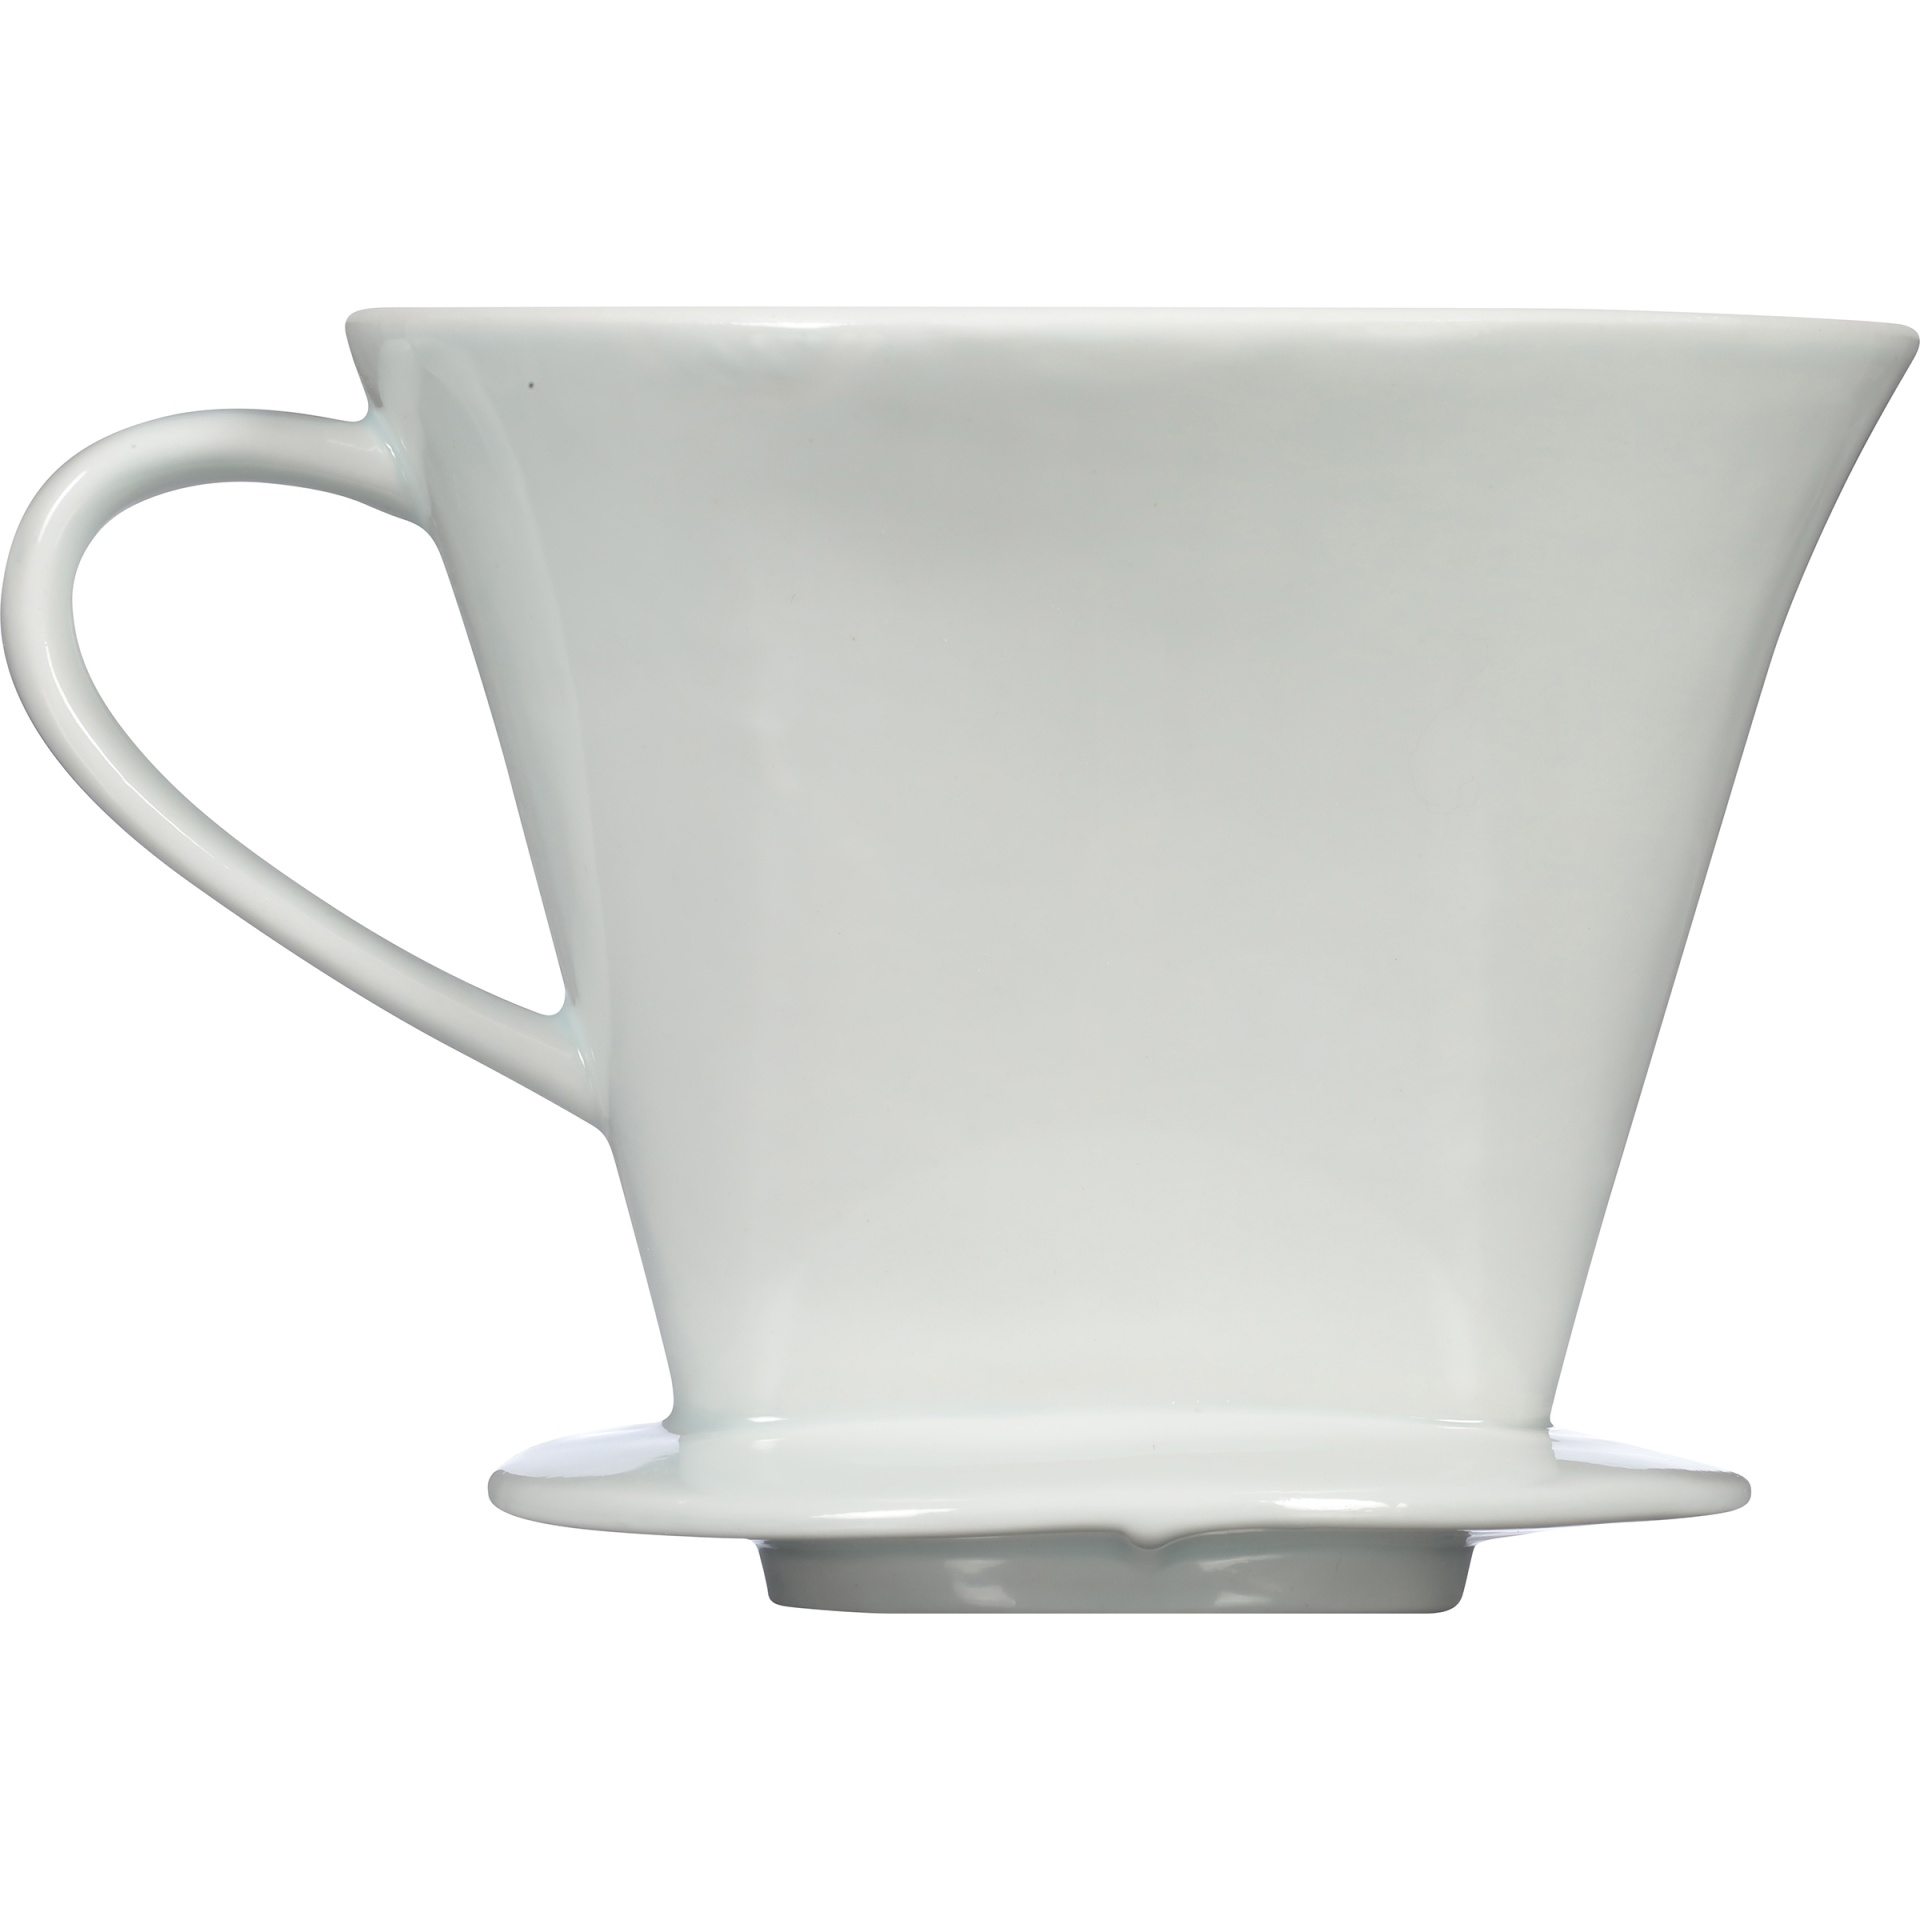 slide 6 of 6, Melitta 1 Cup Porcelain Pour-Over Brewing Cone,